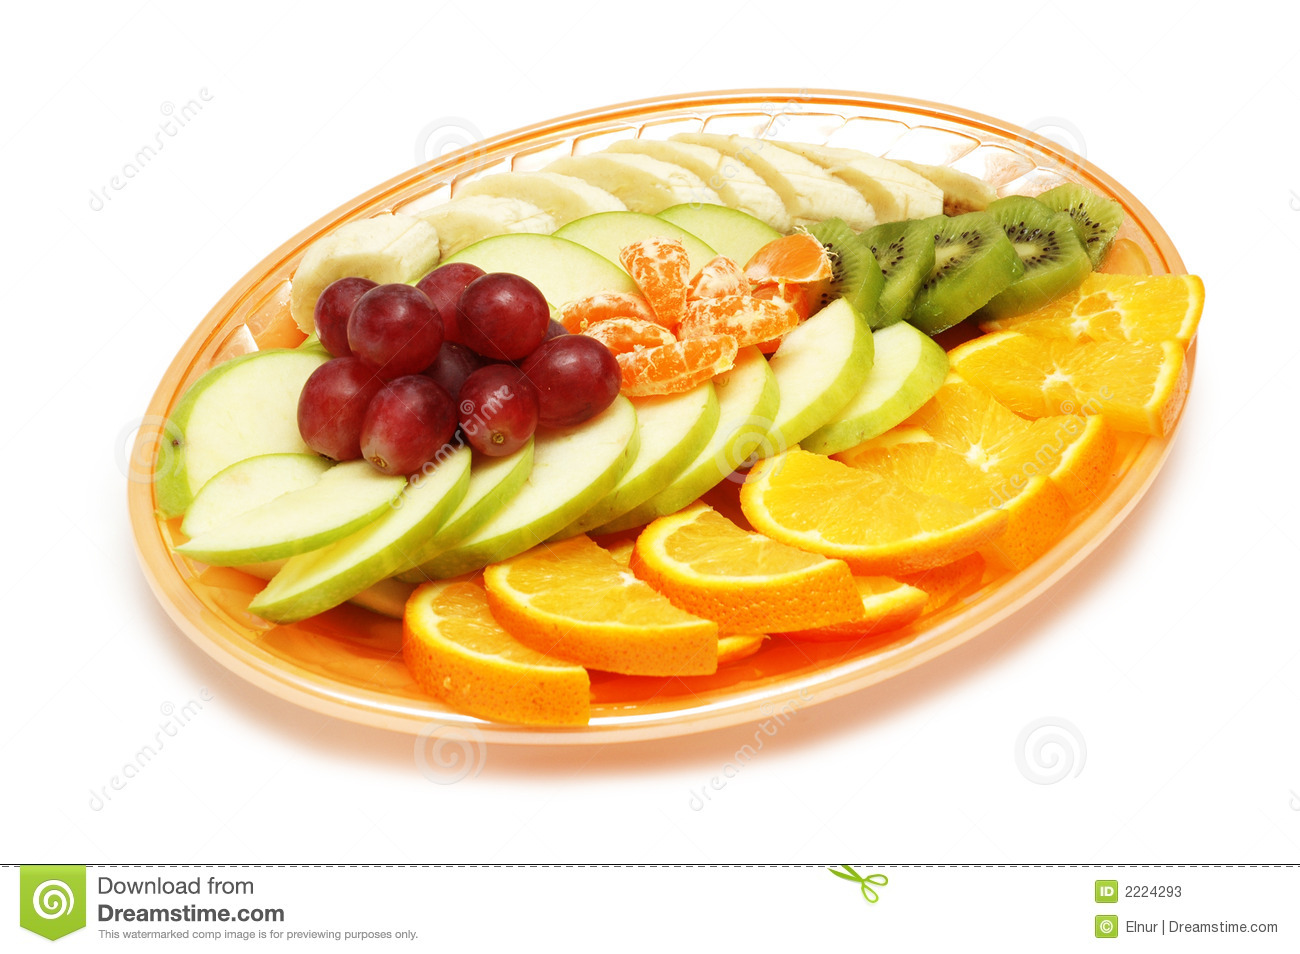 Plate with fruit salad isolated on white - space for your text.